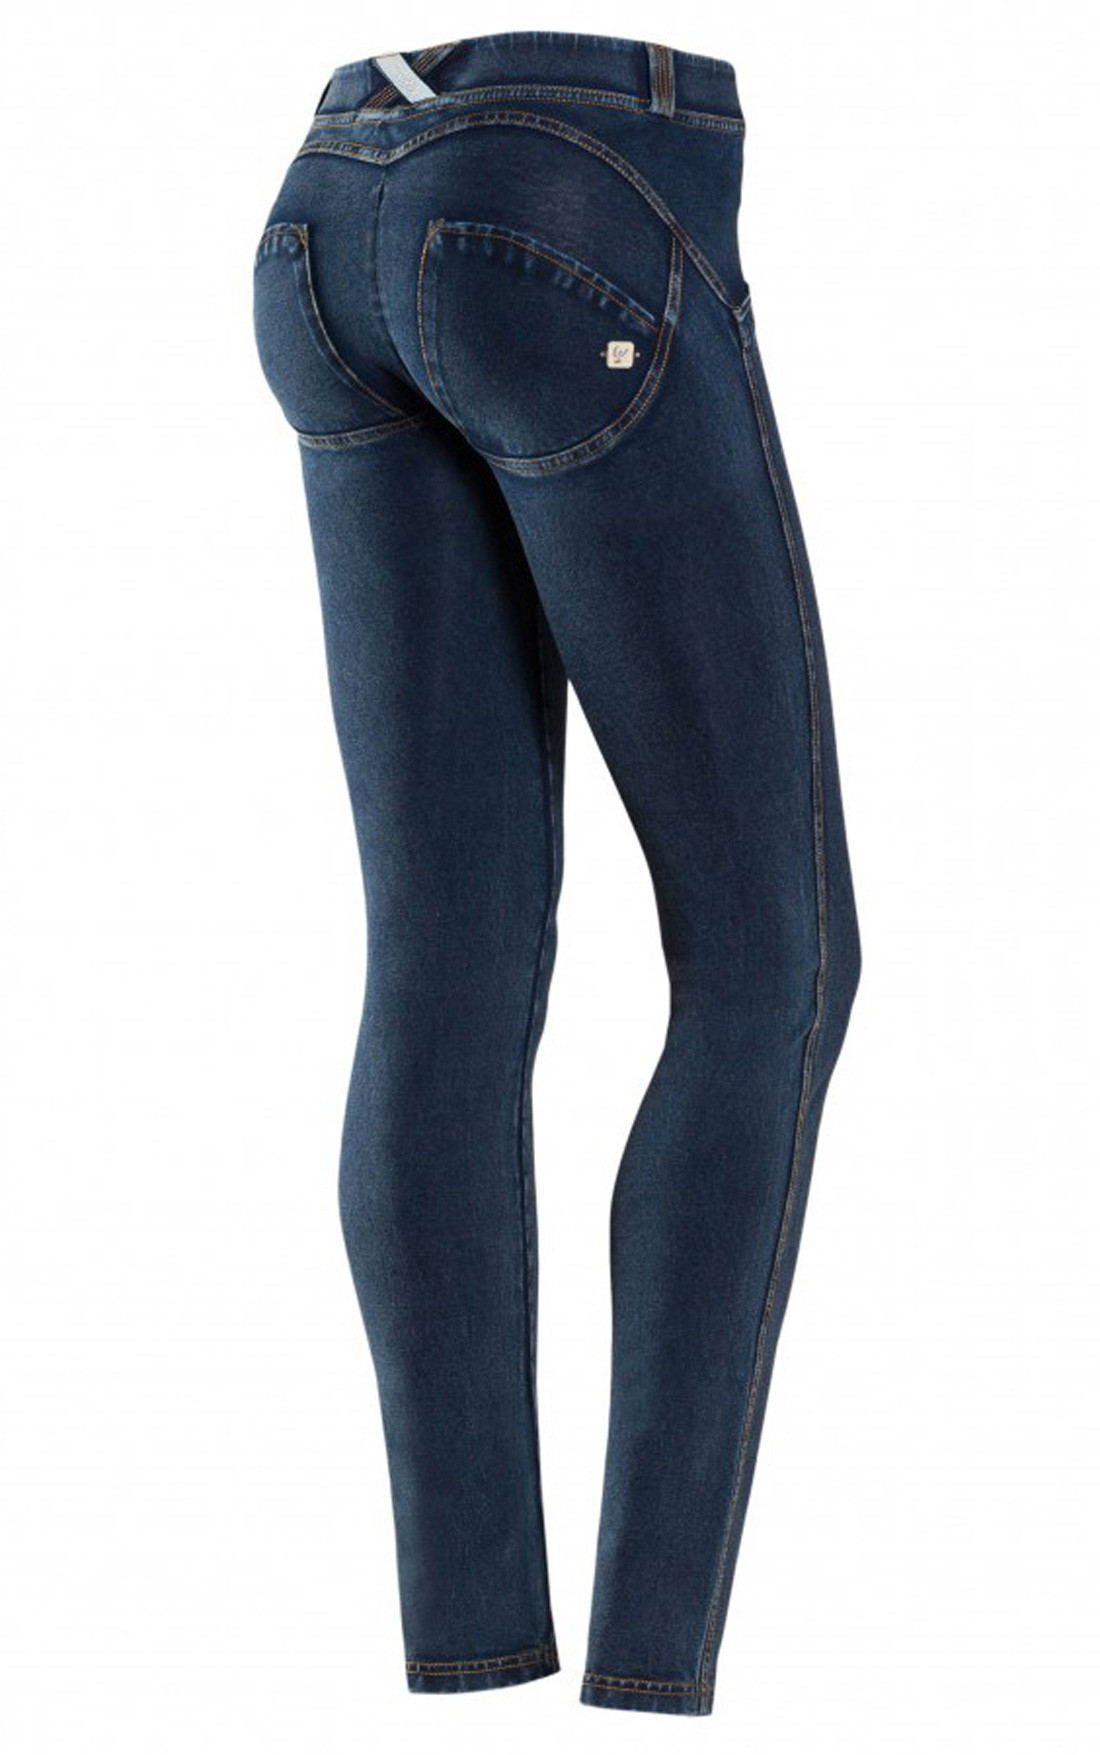 4b959aa6ef238 Freddy - Wr.Up® Shaping Effect Mid Waist Skinny Jeggings Dark Denim  (WRUP1RJ1E_J0Y ...